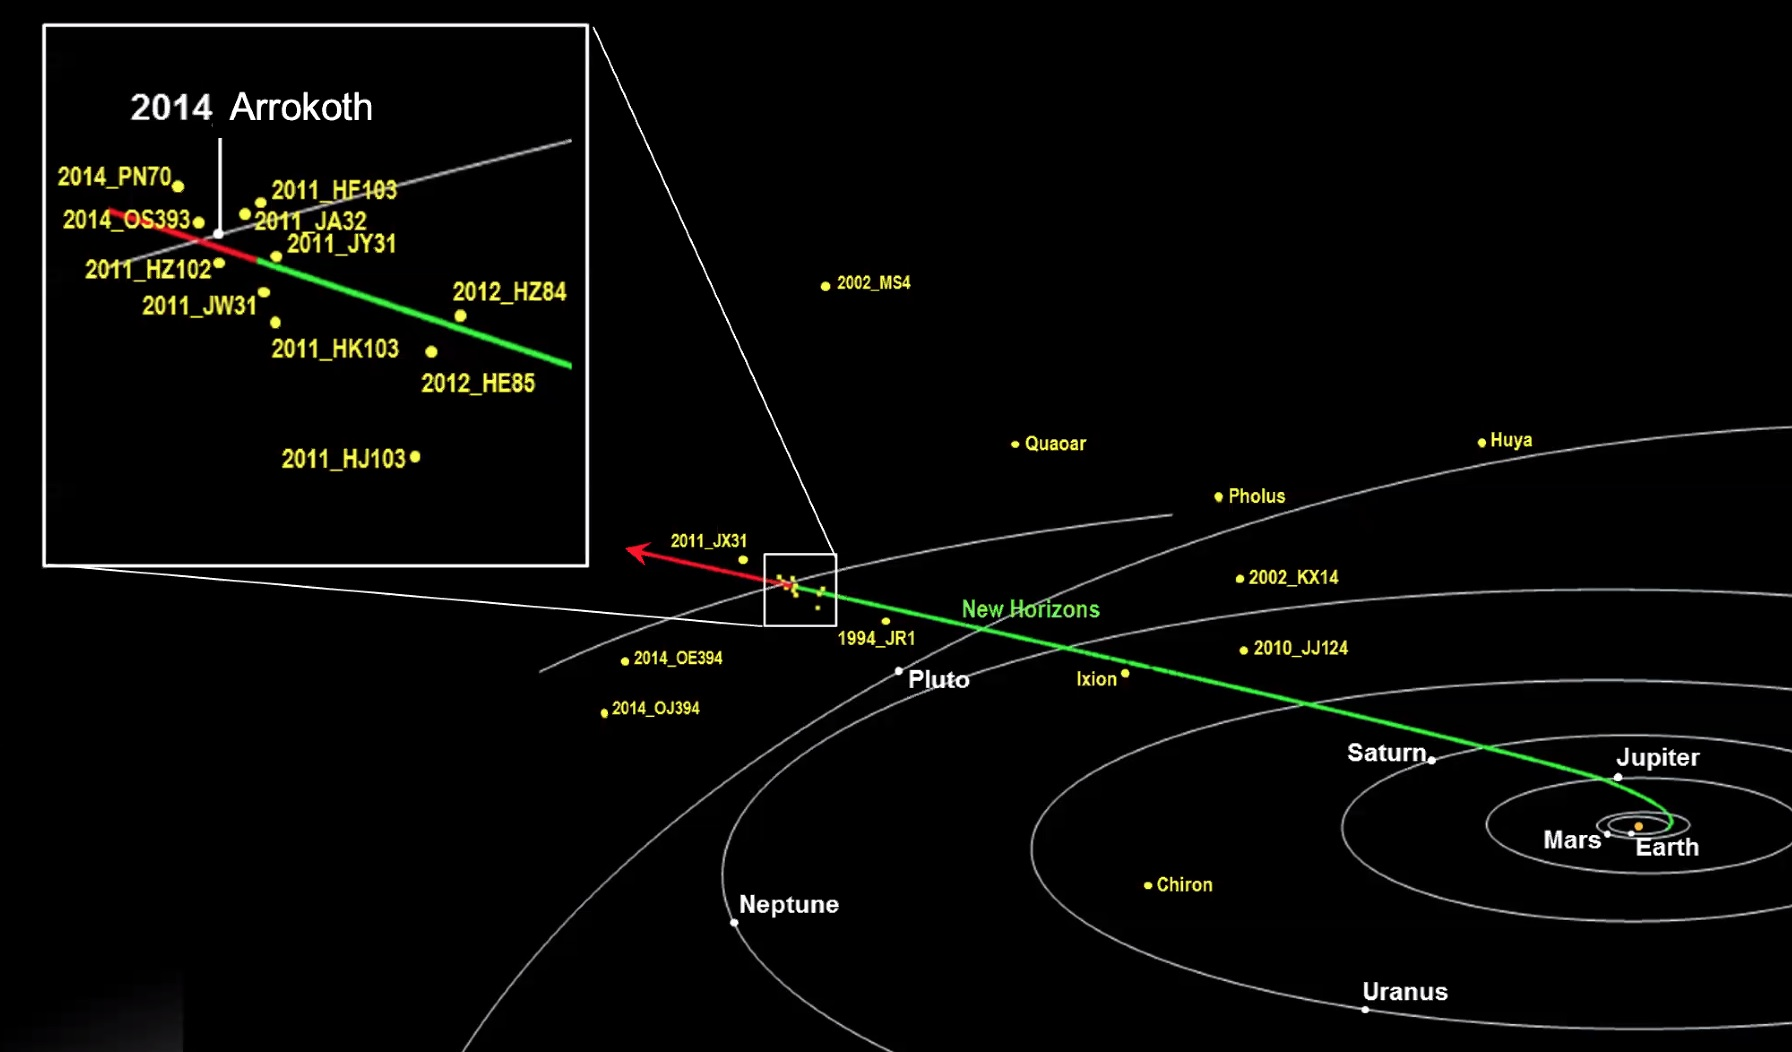 New Horizons path out of the solar system